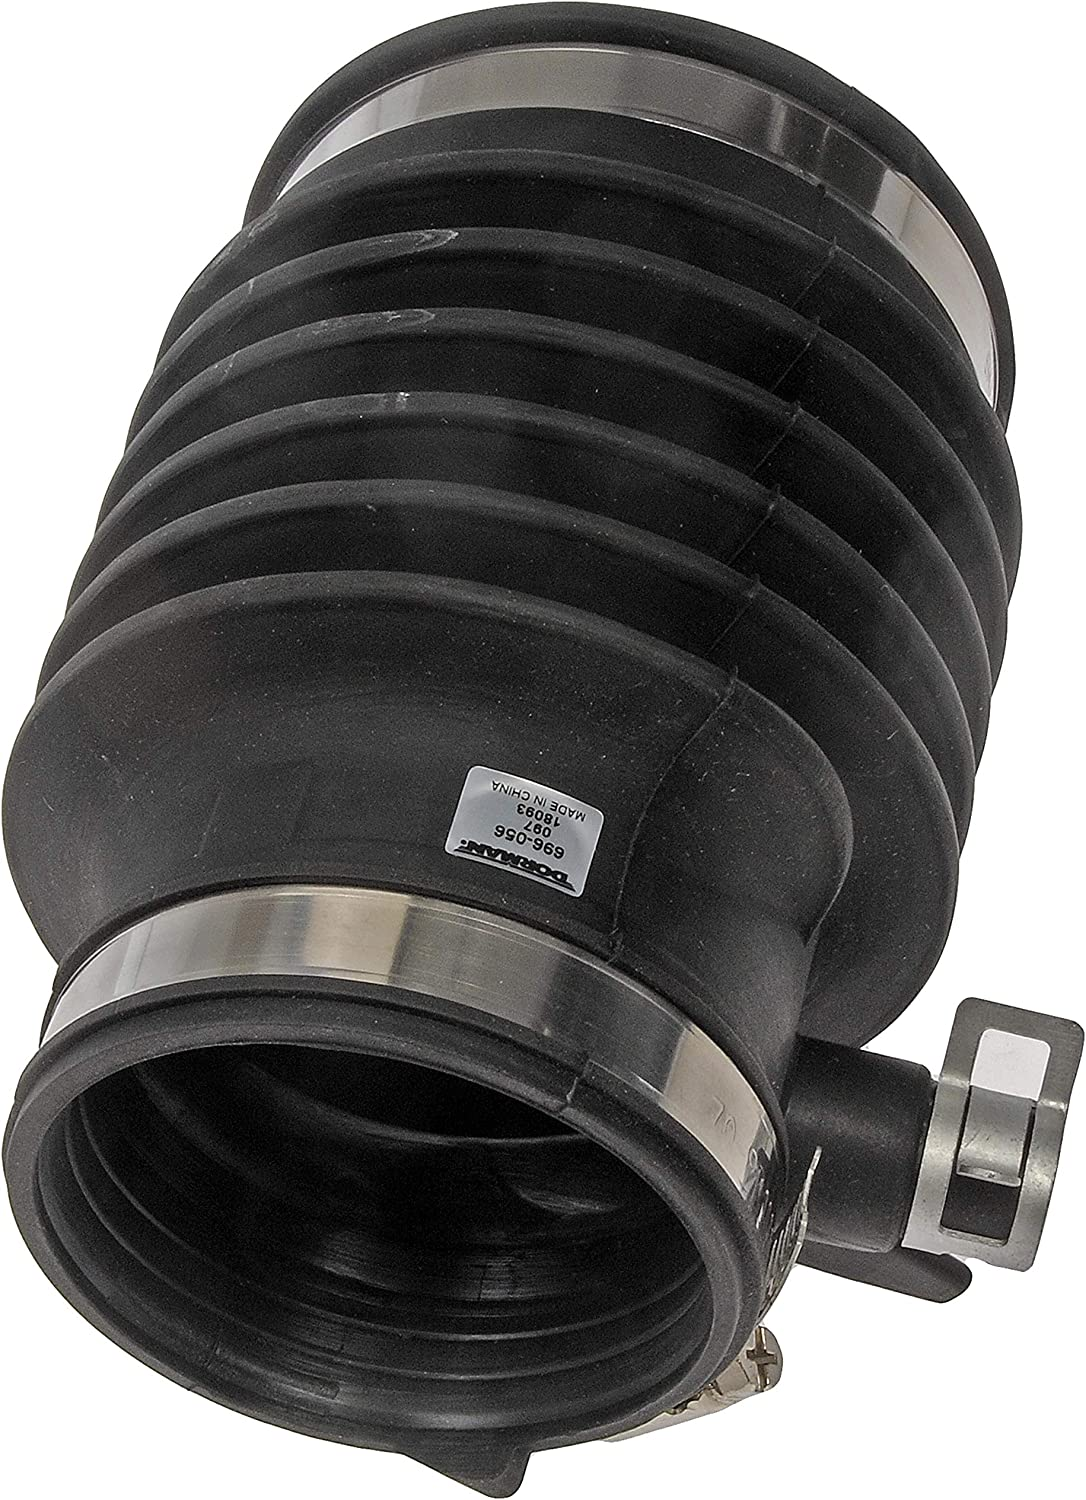 Dorman 696-056 Engine Air Intake Hose for Select Honda Accord Models